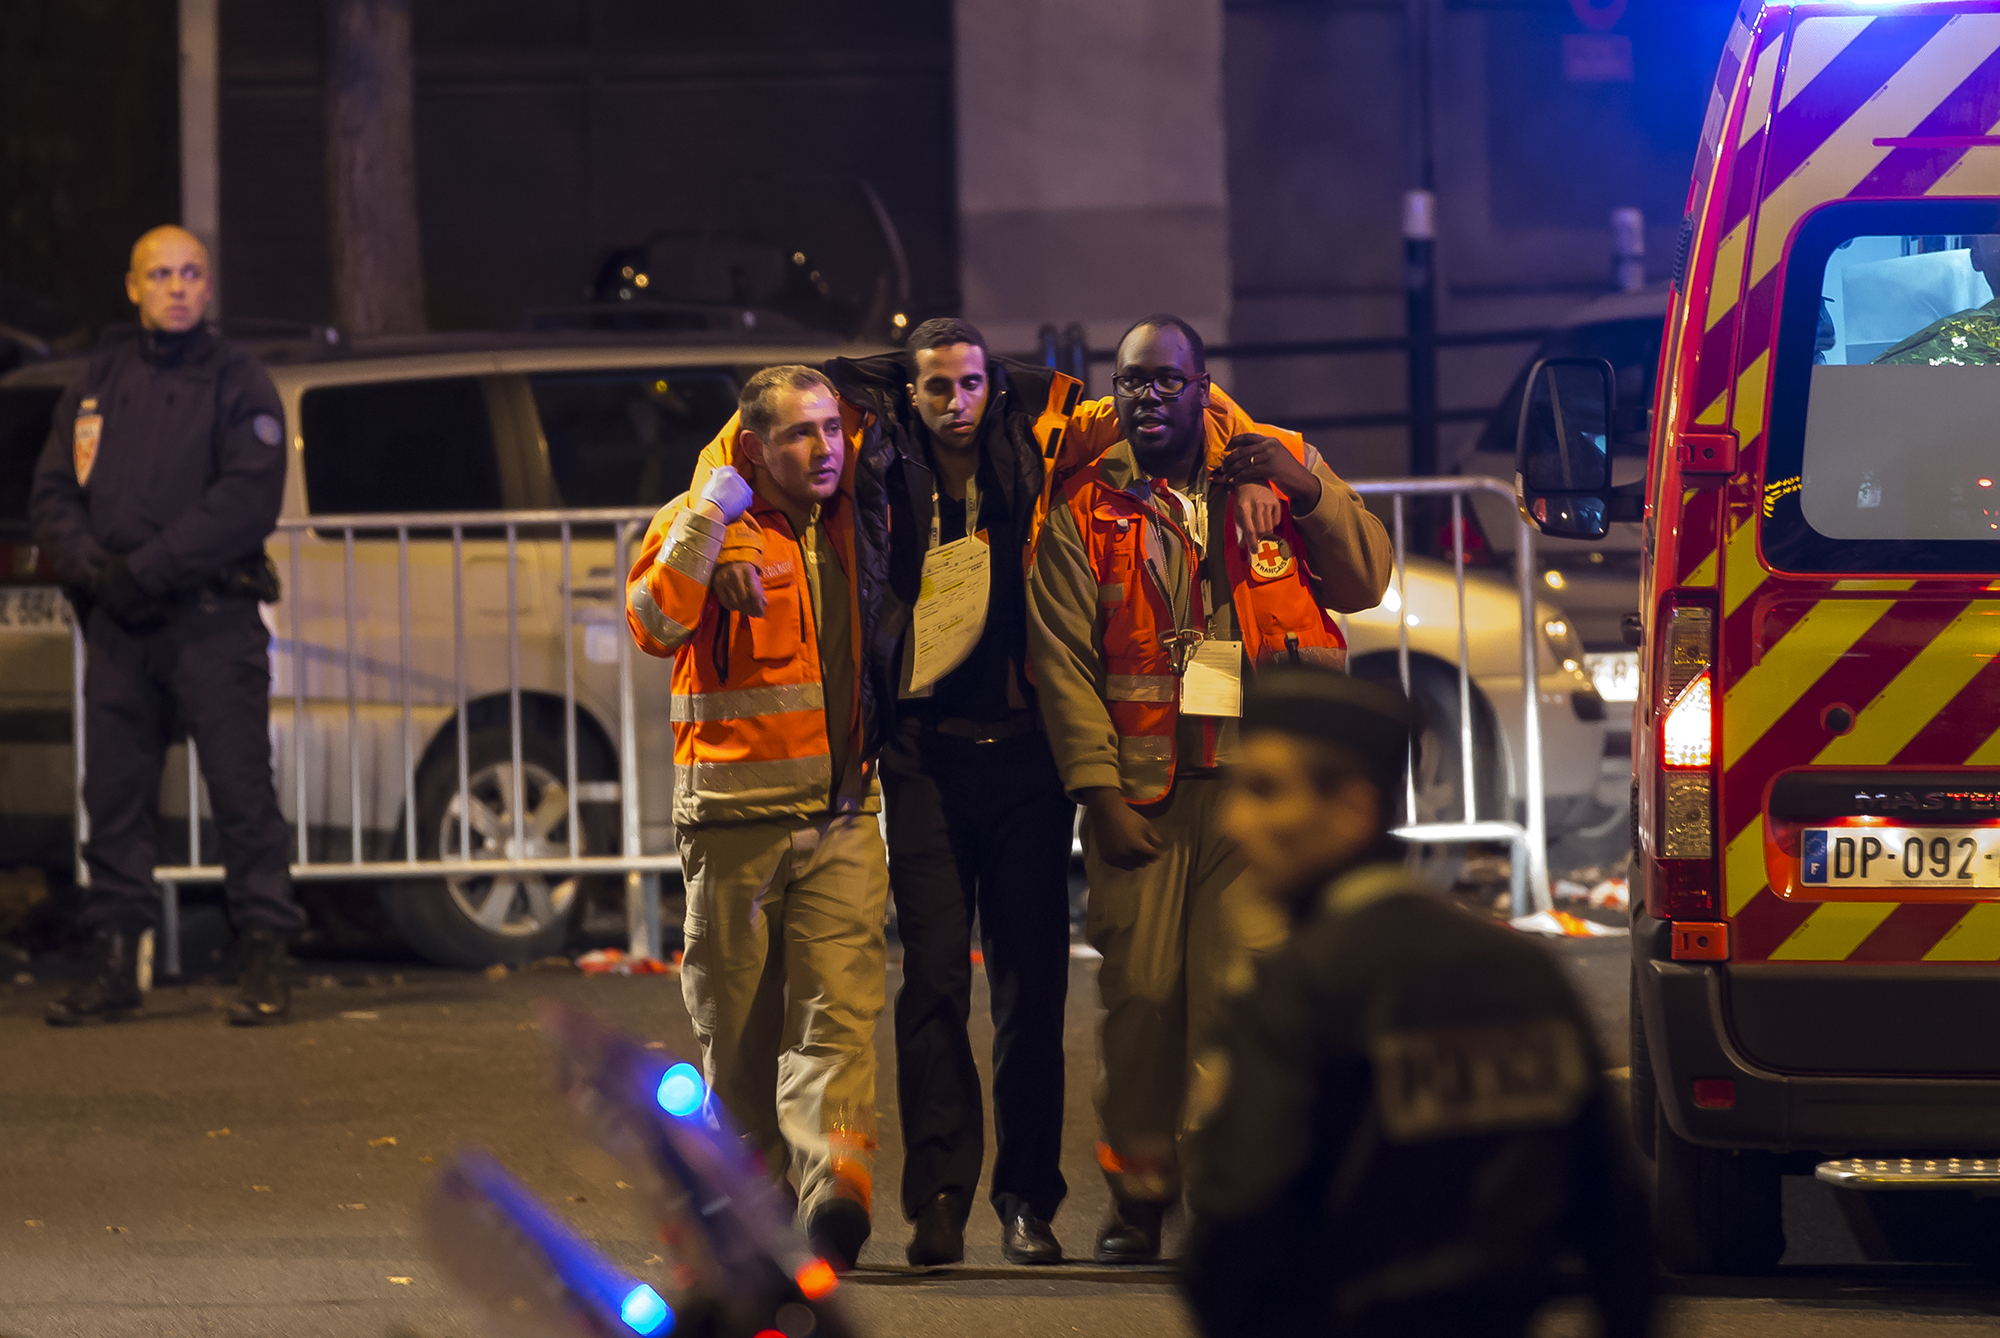 RESCUE. Wounded people are evacuated from the Stade de France in Paris, France, November 13, 2015, after explosions were reported. Photo by Ian Langsdon/EPA